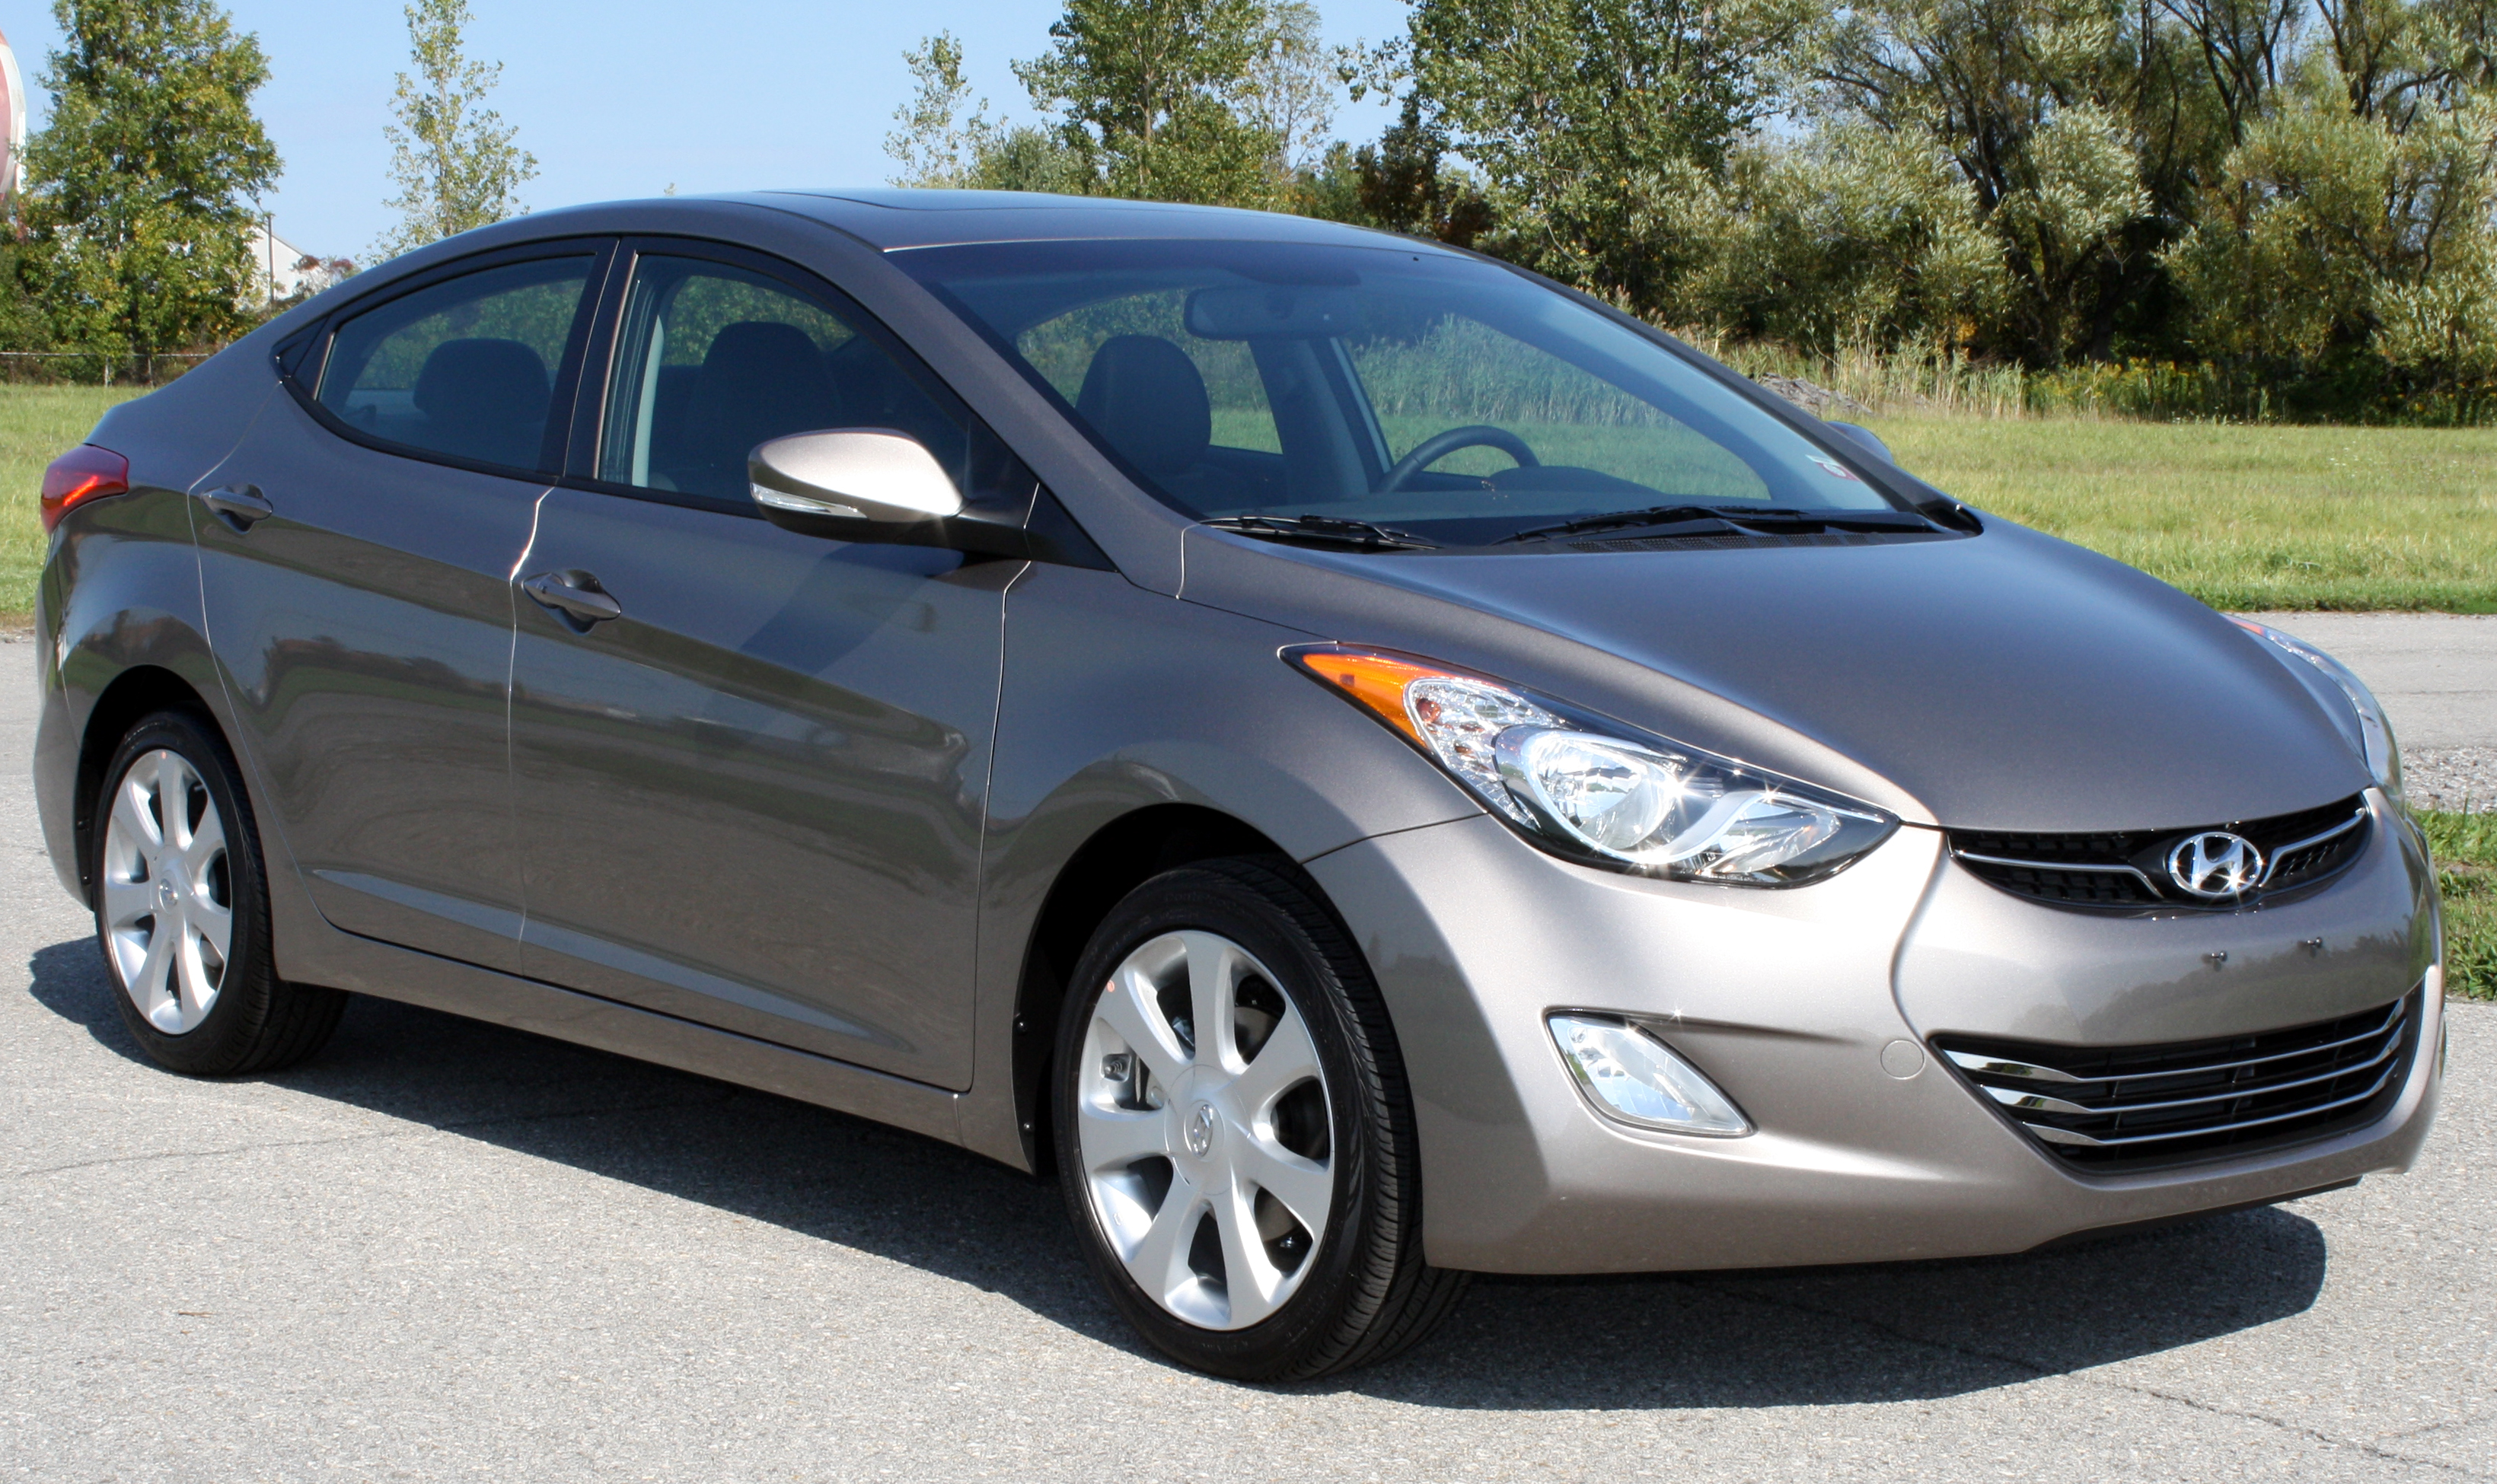 2012 hyundai elantra information and photos momentcar. Black Bedroom Furniture Sets. Home Design Ideas